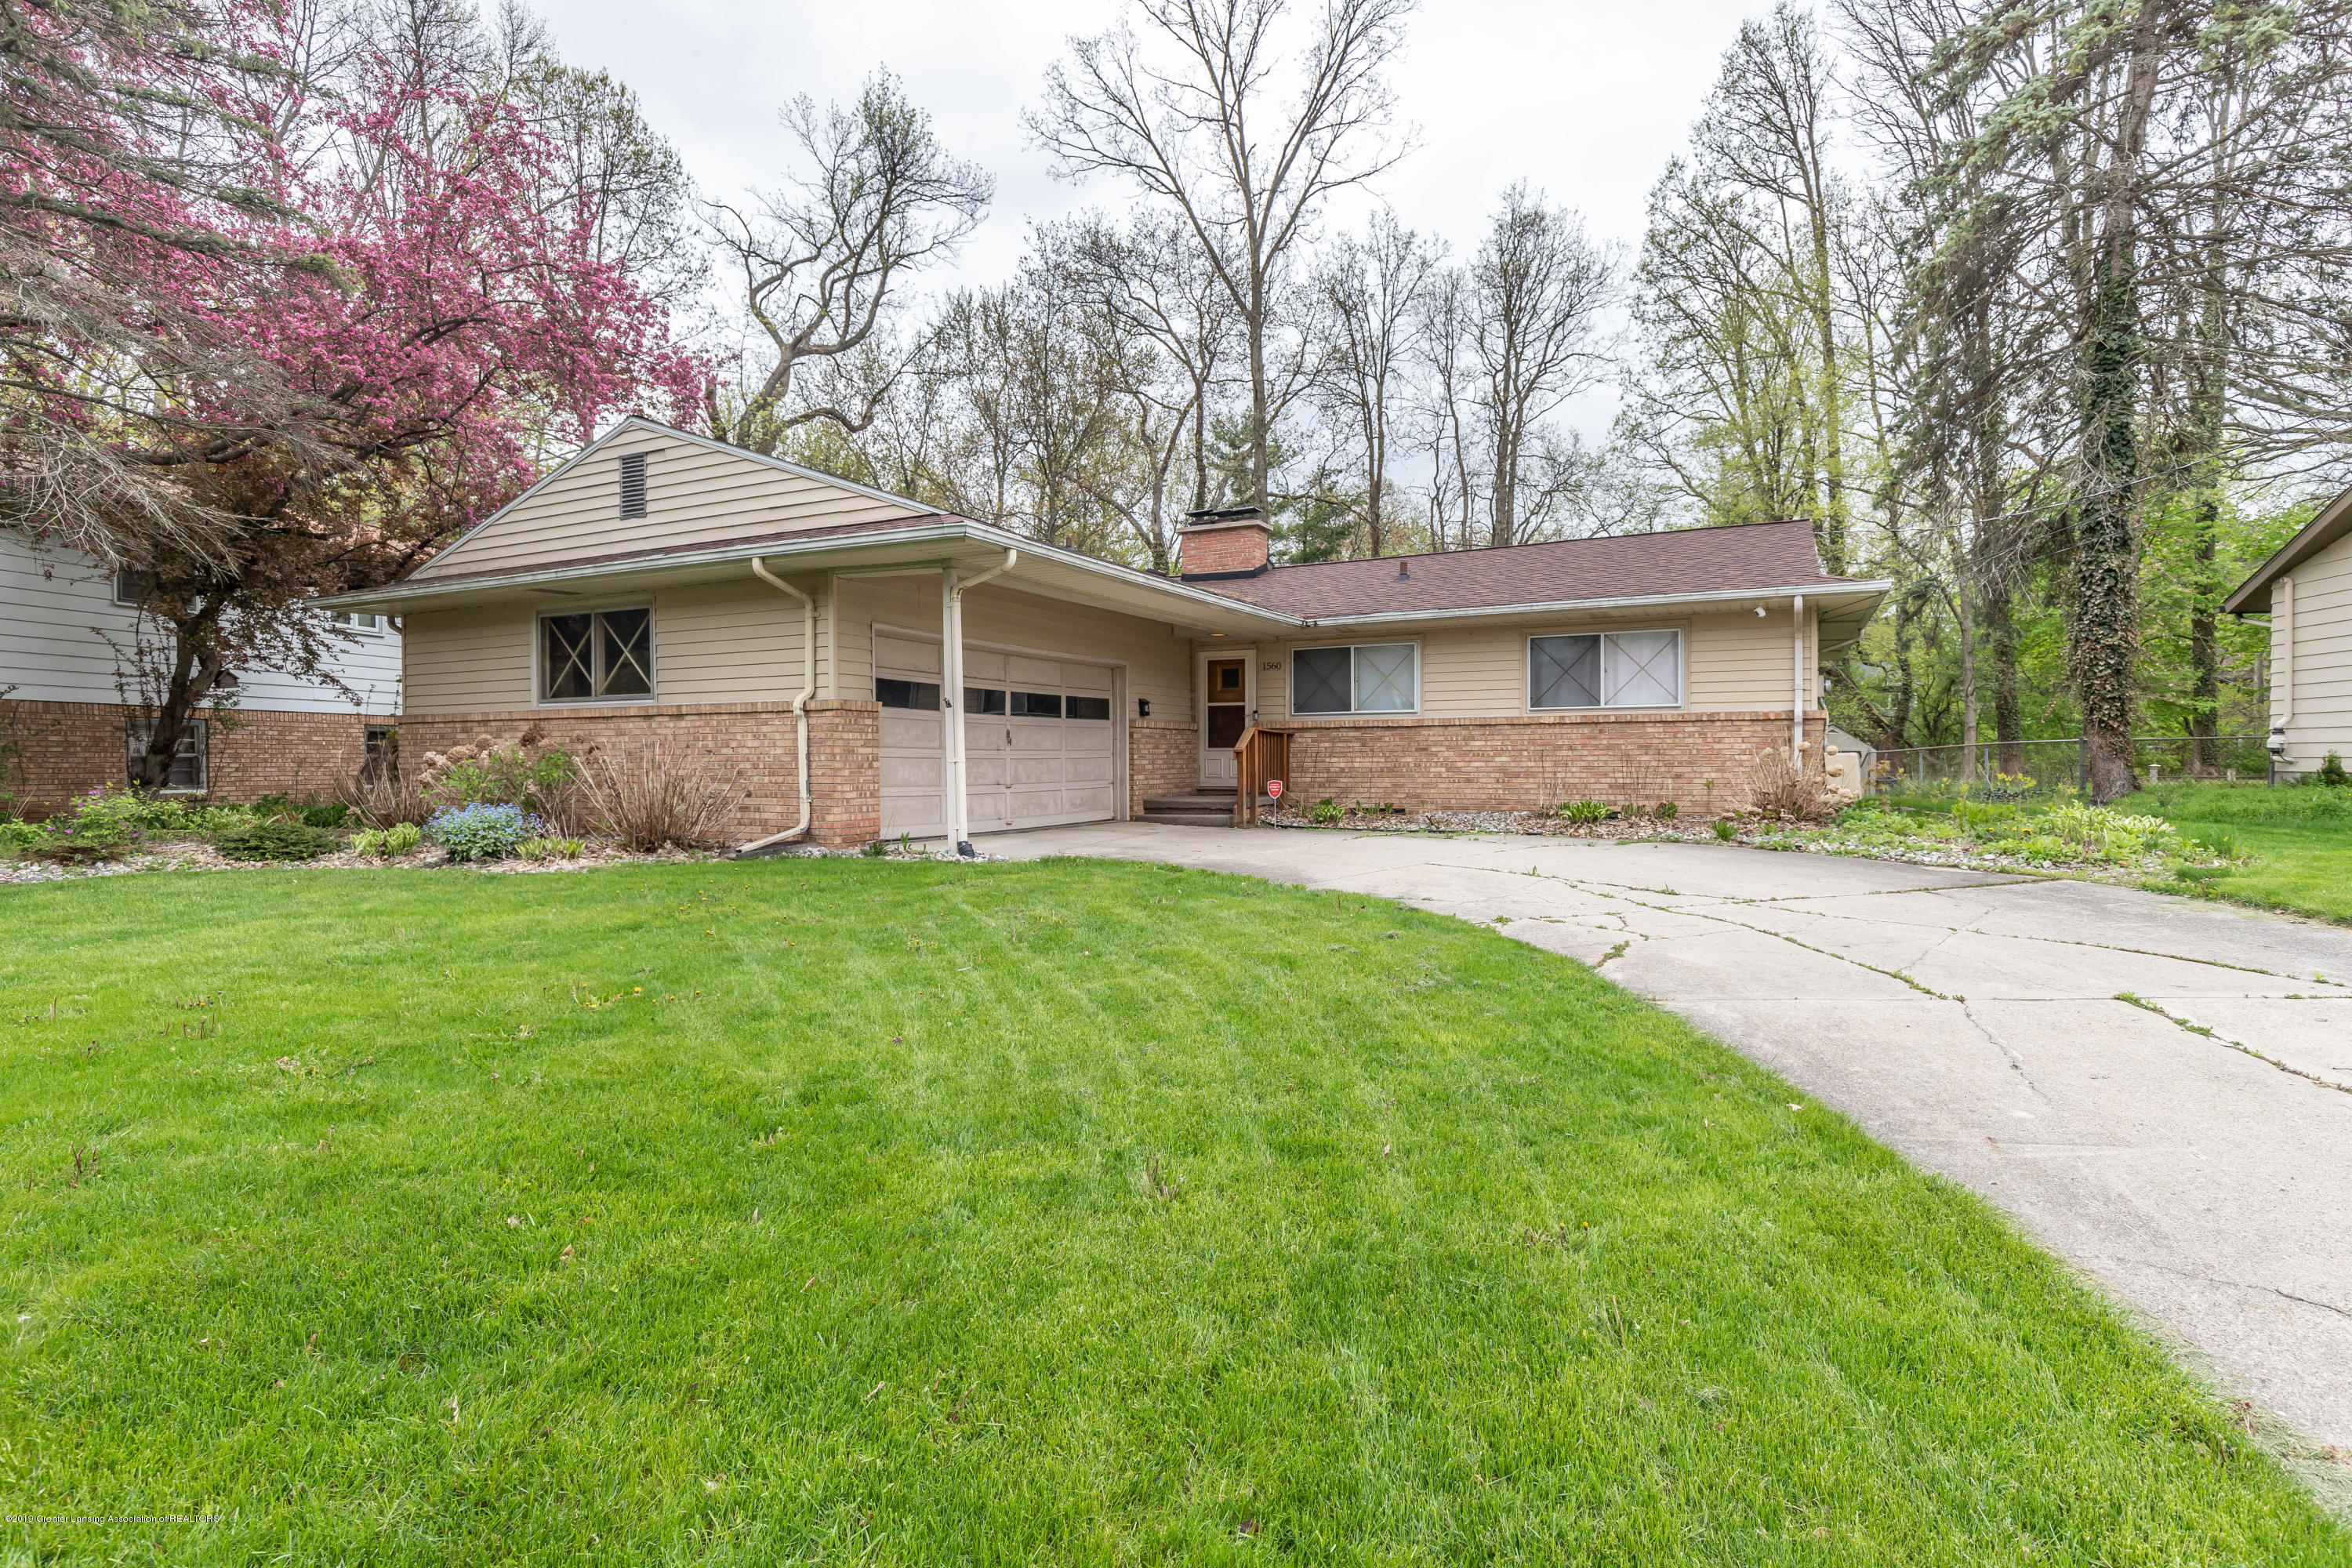 1560 Cahill Dr - cahillfront (1 of 1) - 1